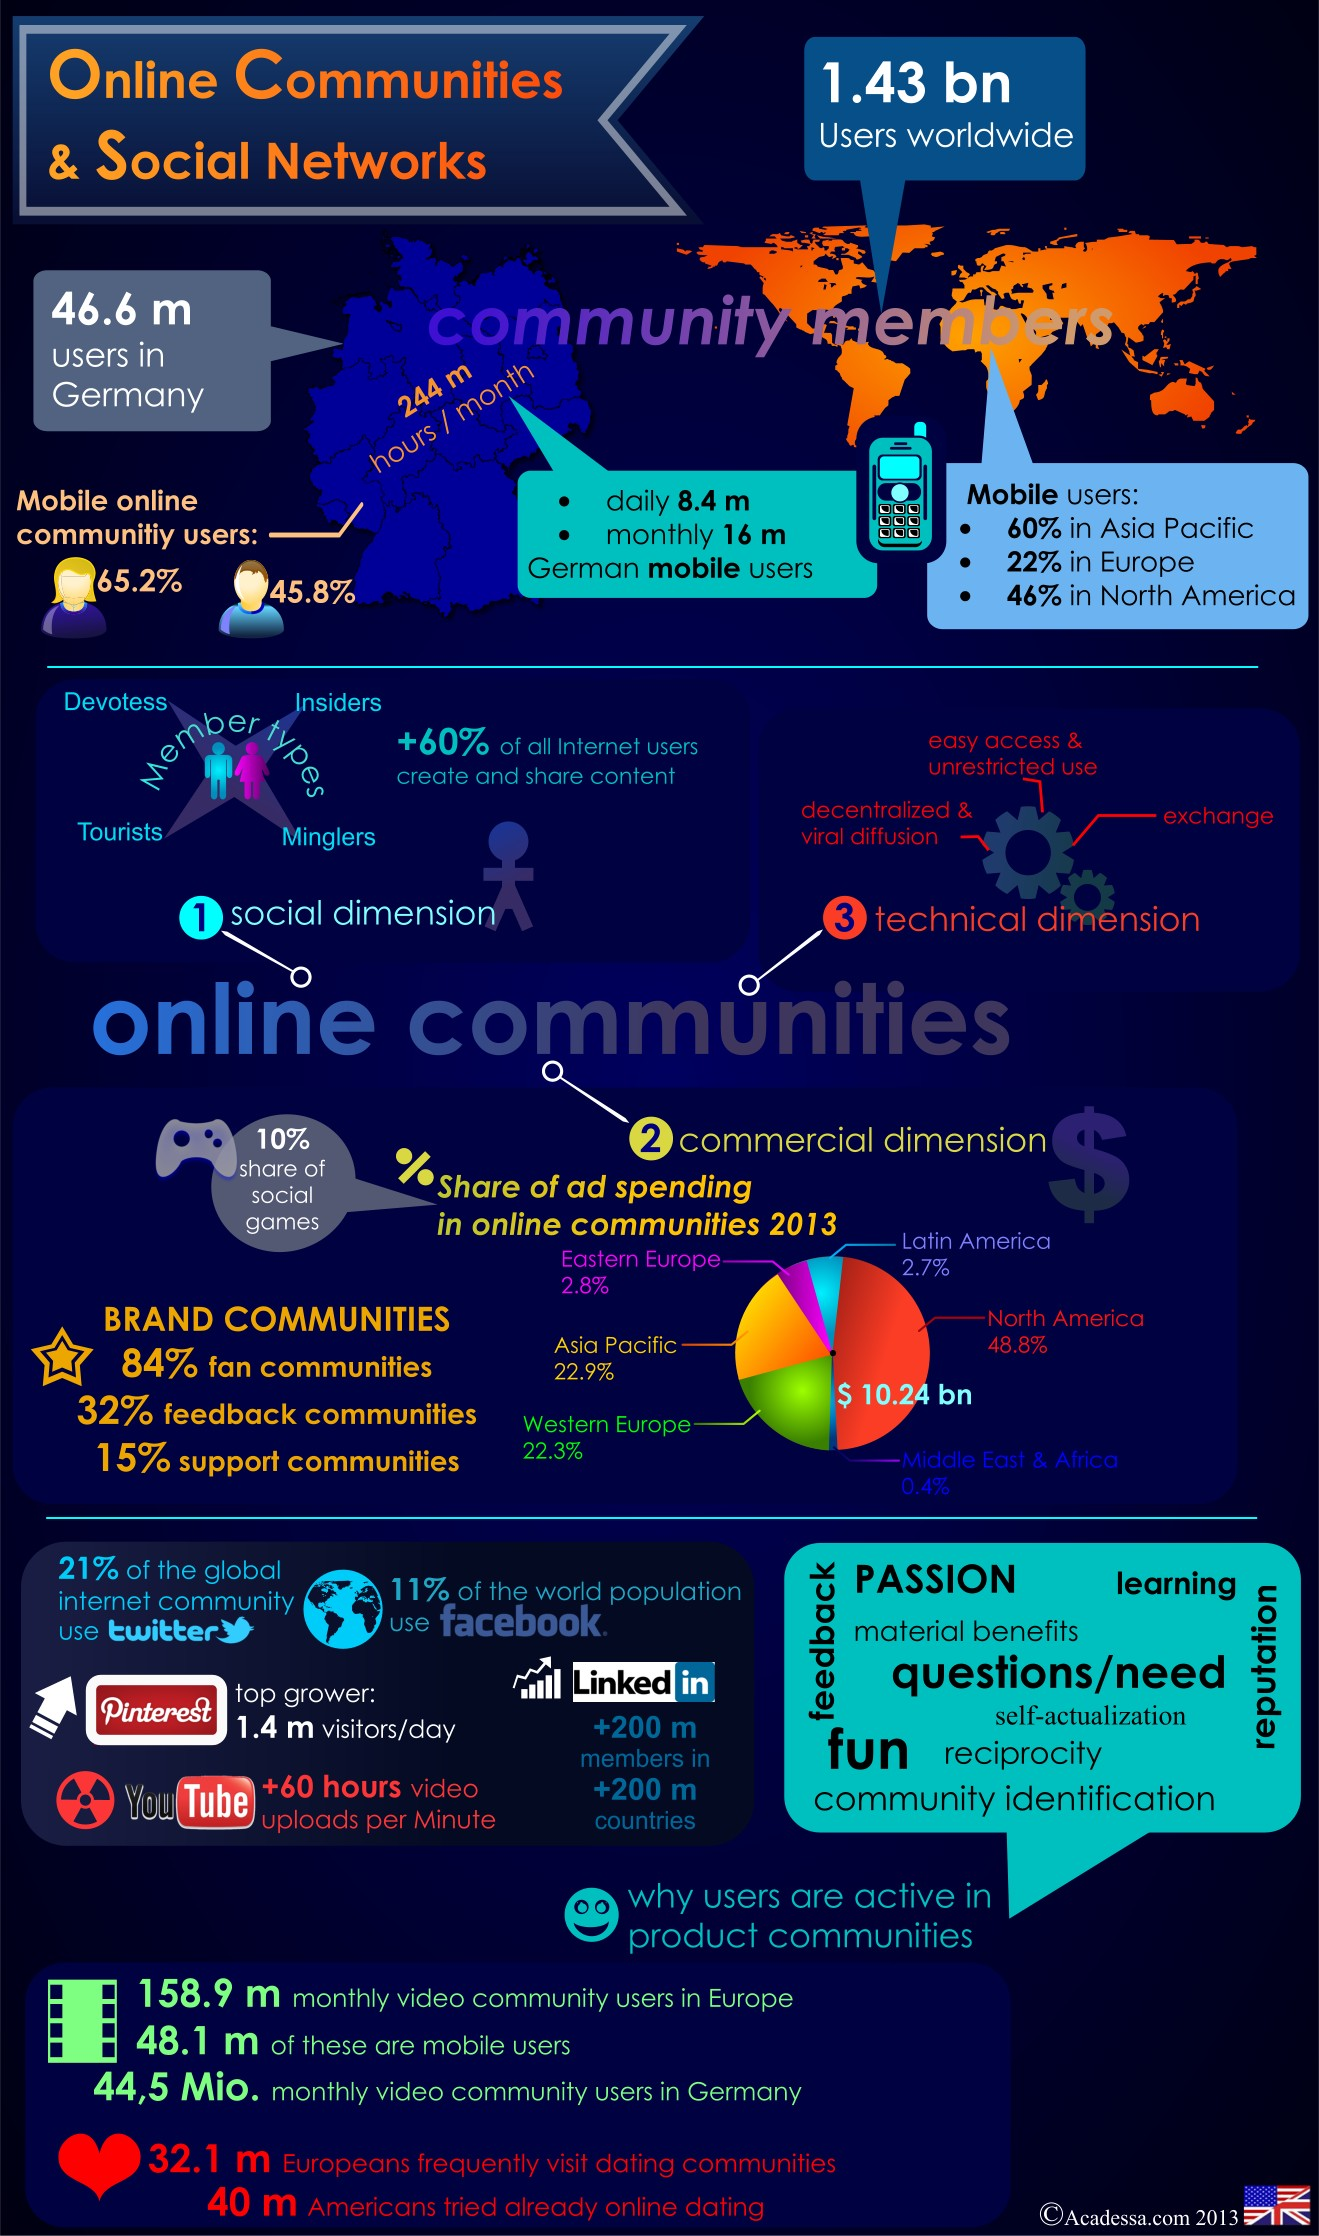 the great online community and social network infographic